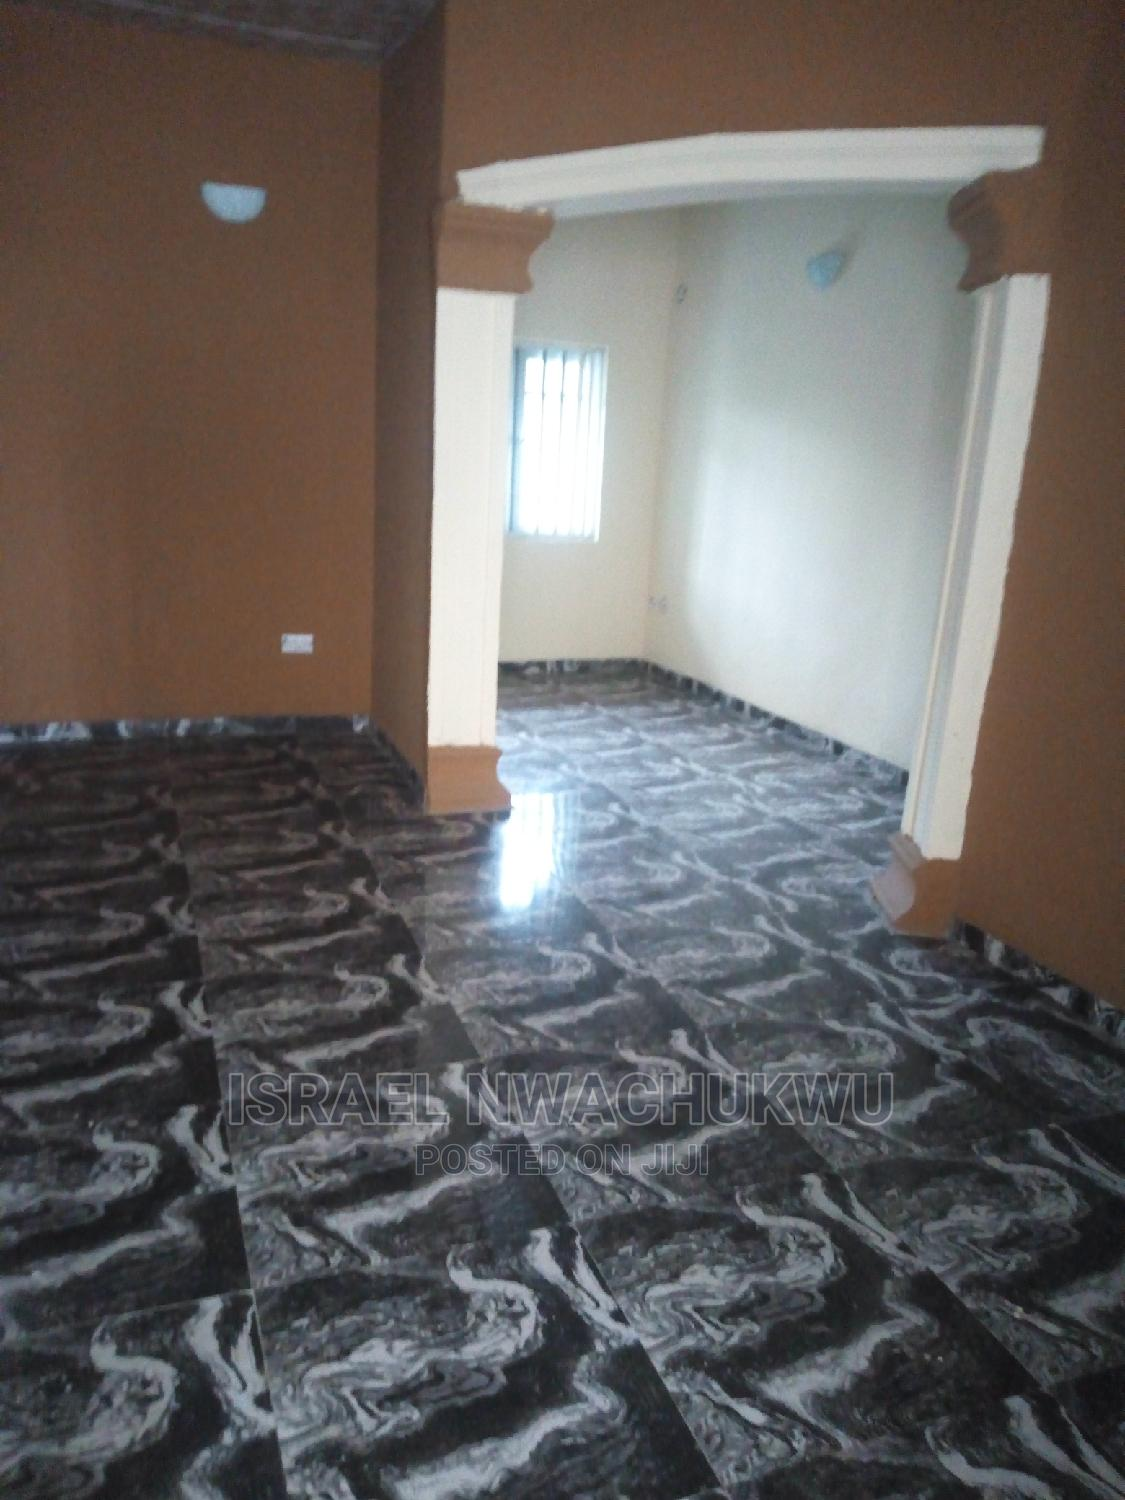 1 Bedroom Flat For Rent in Army Estate, Warri | Houses & Apartments For Rent for sale in Warri, Delta State, Nigeria